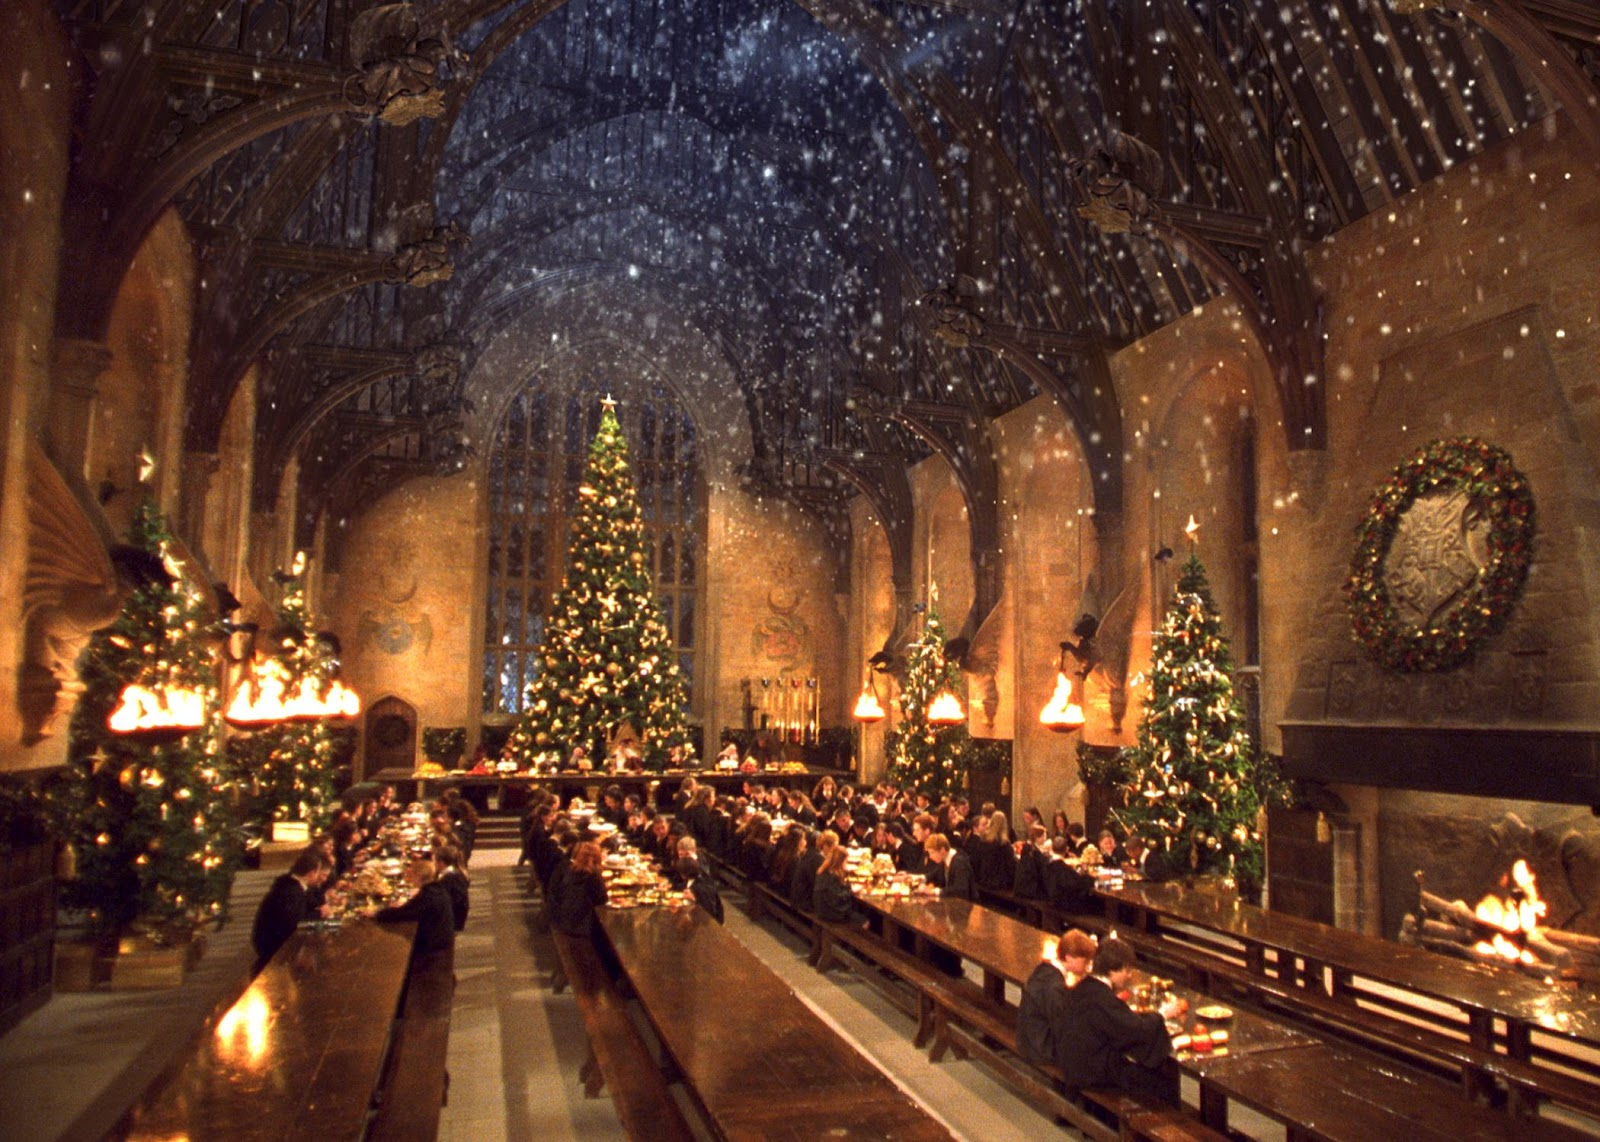 http://images3.wikia.nocookie.net/__cb20110104220159/harrypotter/ru/images/f/f9/Natale_hogwarts.jpg